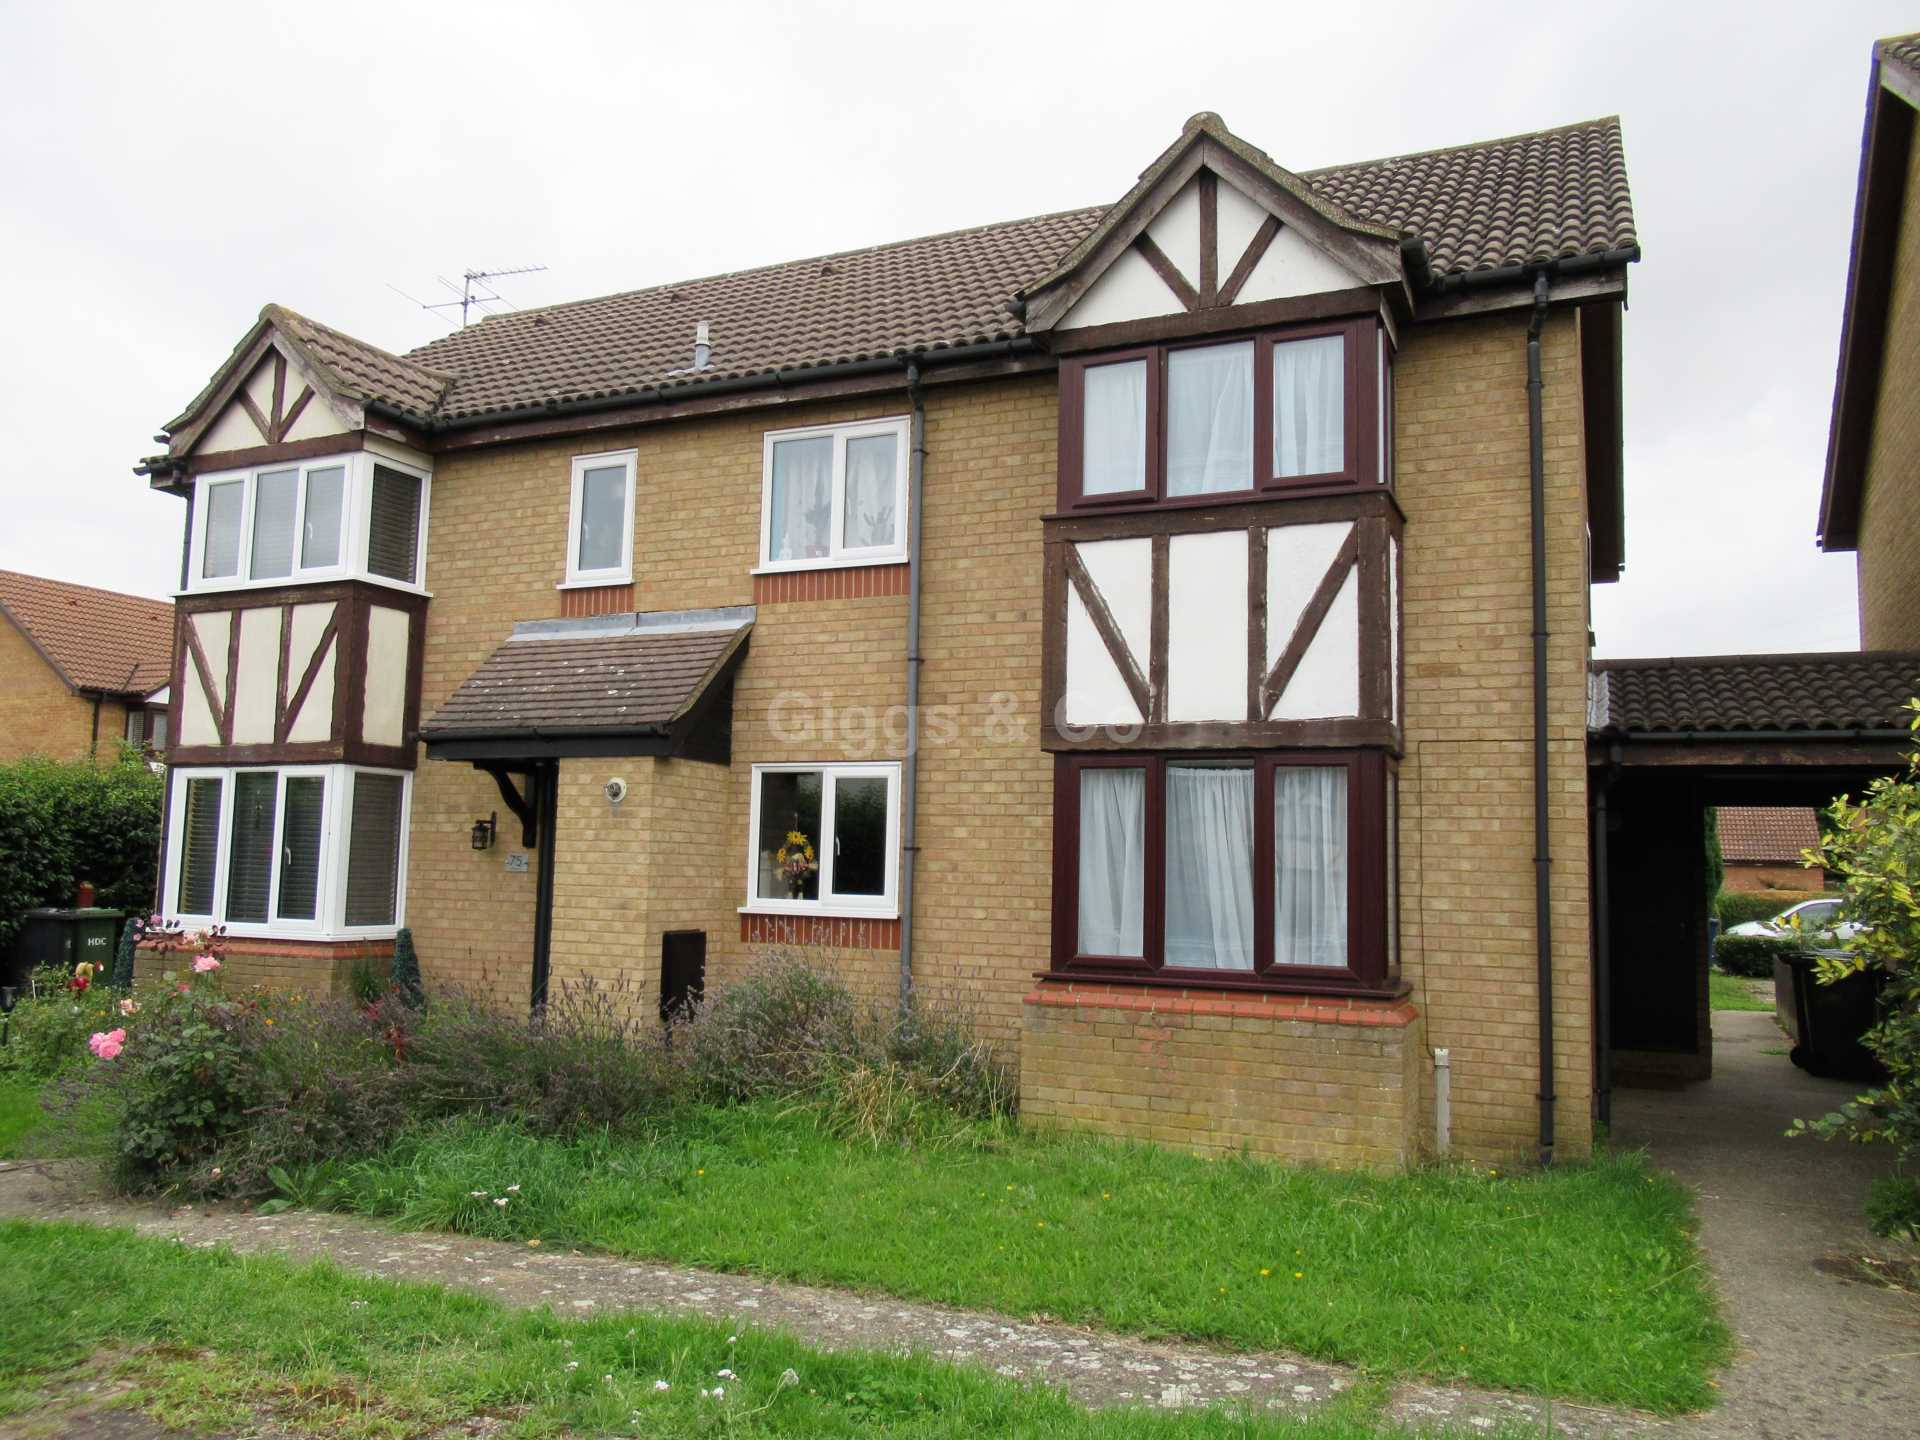 2 bed house to rent in Lindisfarne Close, Eynesbury, St Neots, PE19